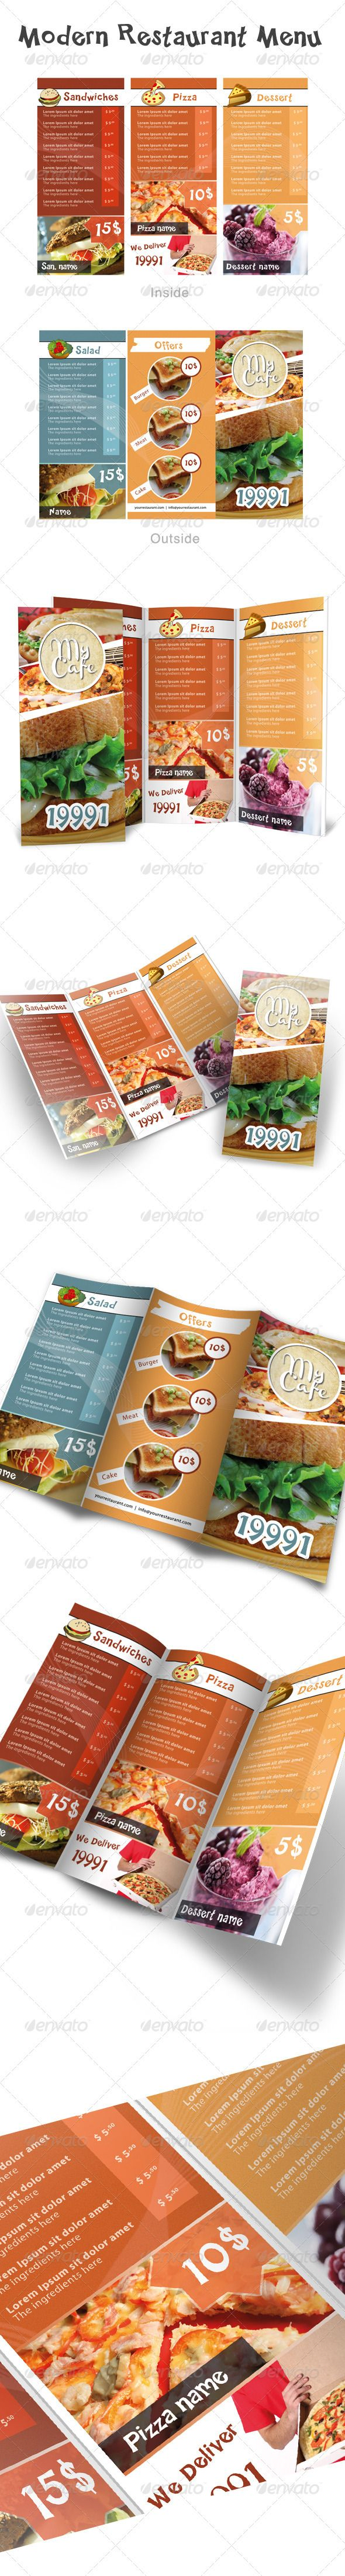 Modern Restaurant Menu — Photoshop PSD #ready #burger • Available here → https://graphicriver.net/item/modern-restaurant-menu/393560?ref=pxcr